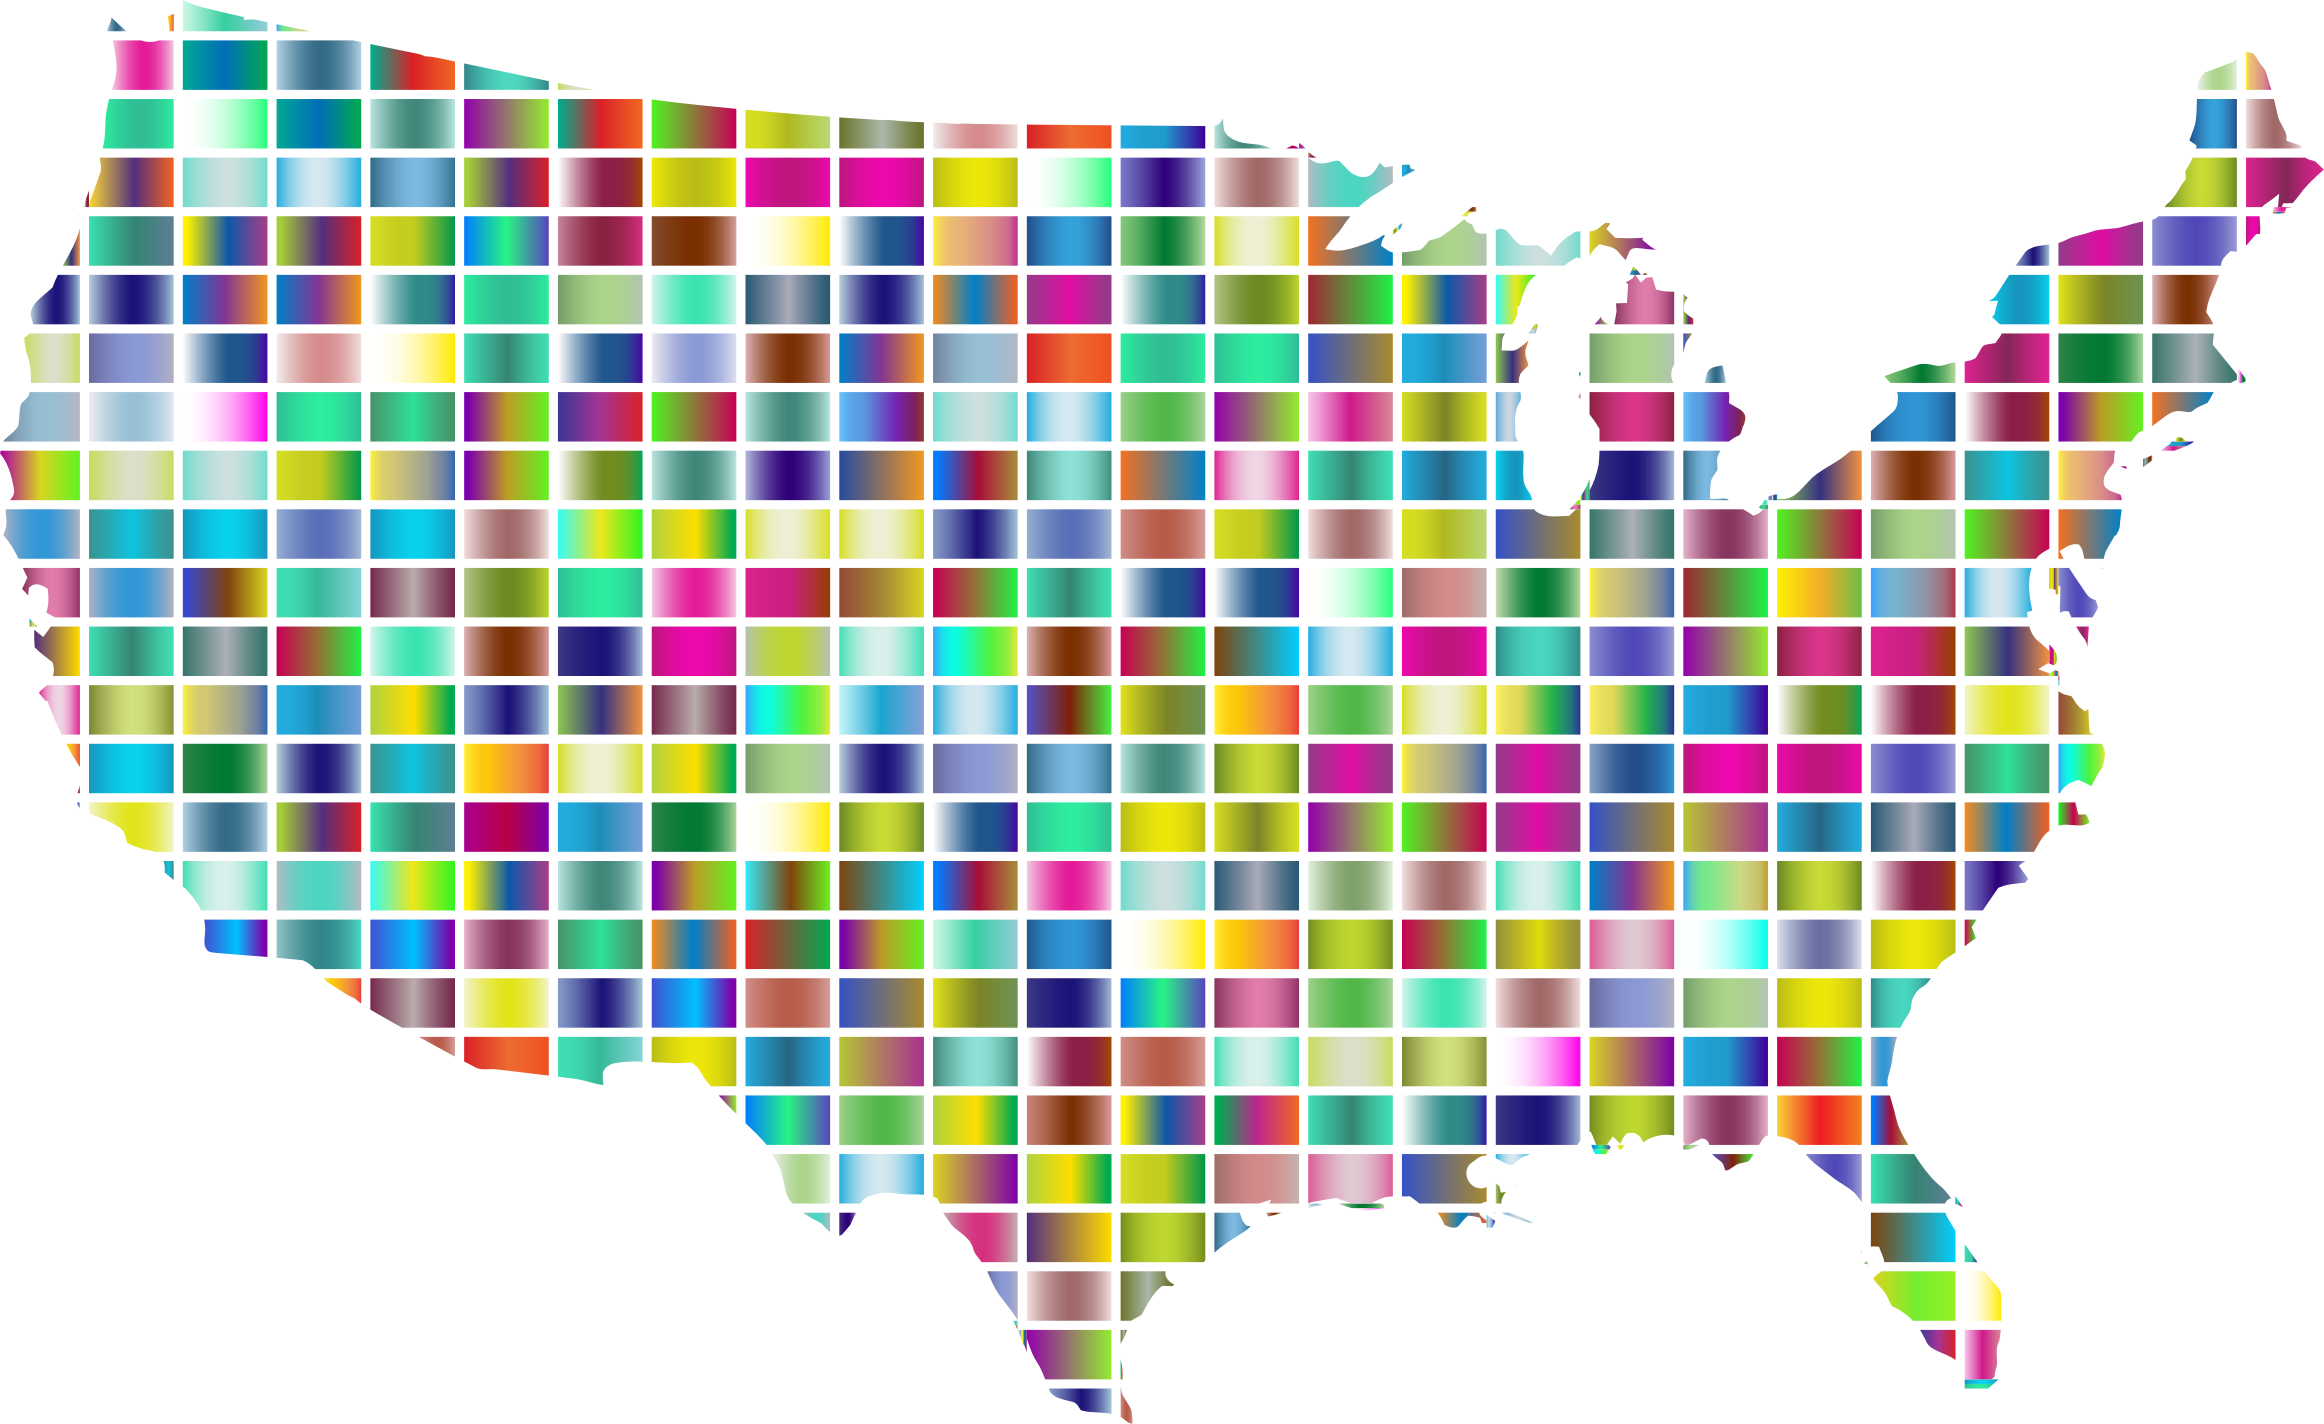 United States Map Grid Design Prismatic 2 by GDJ